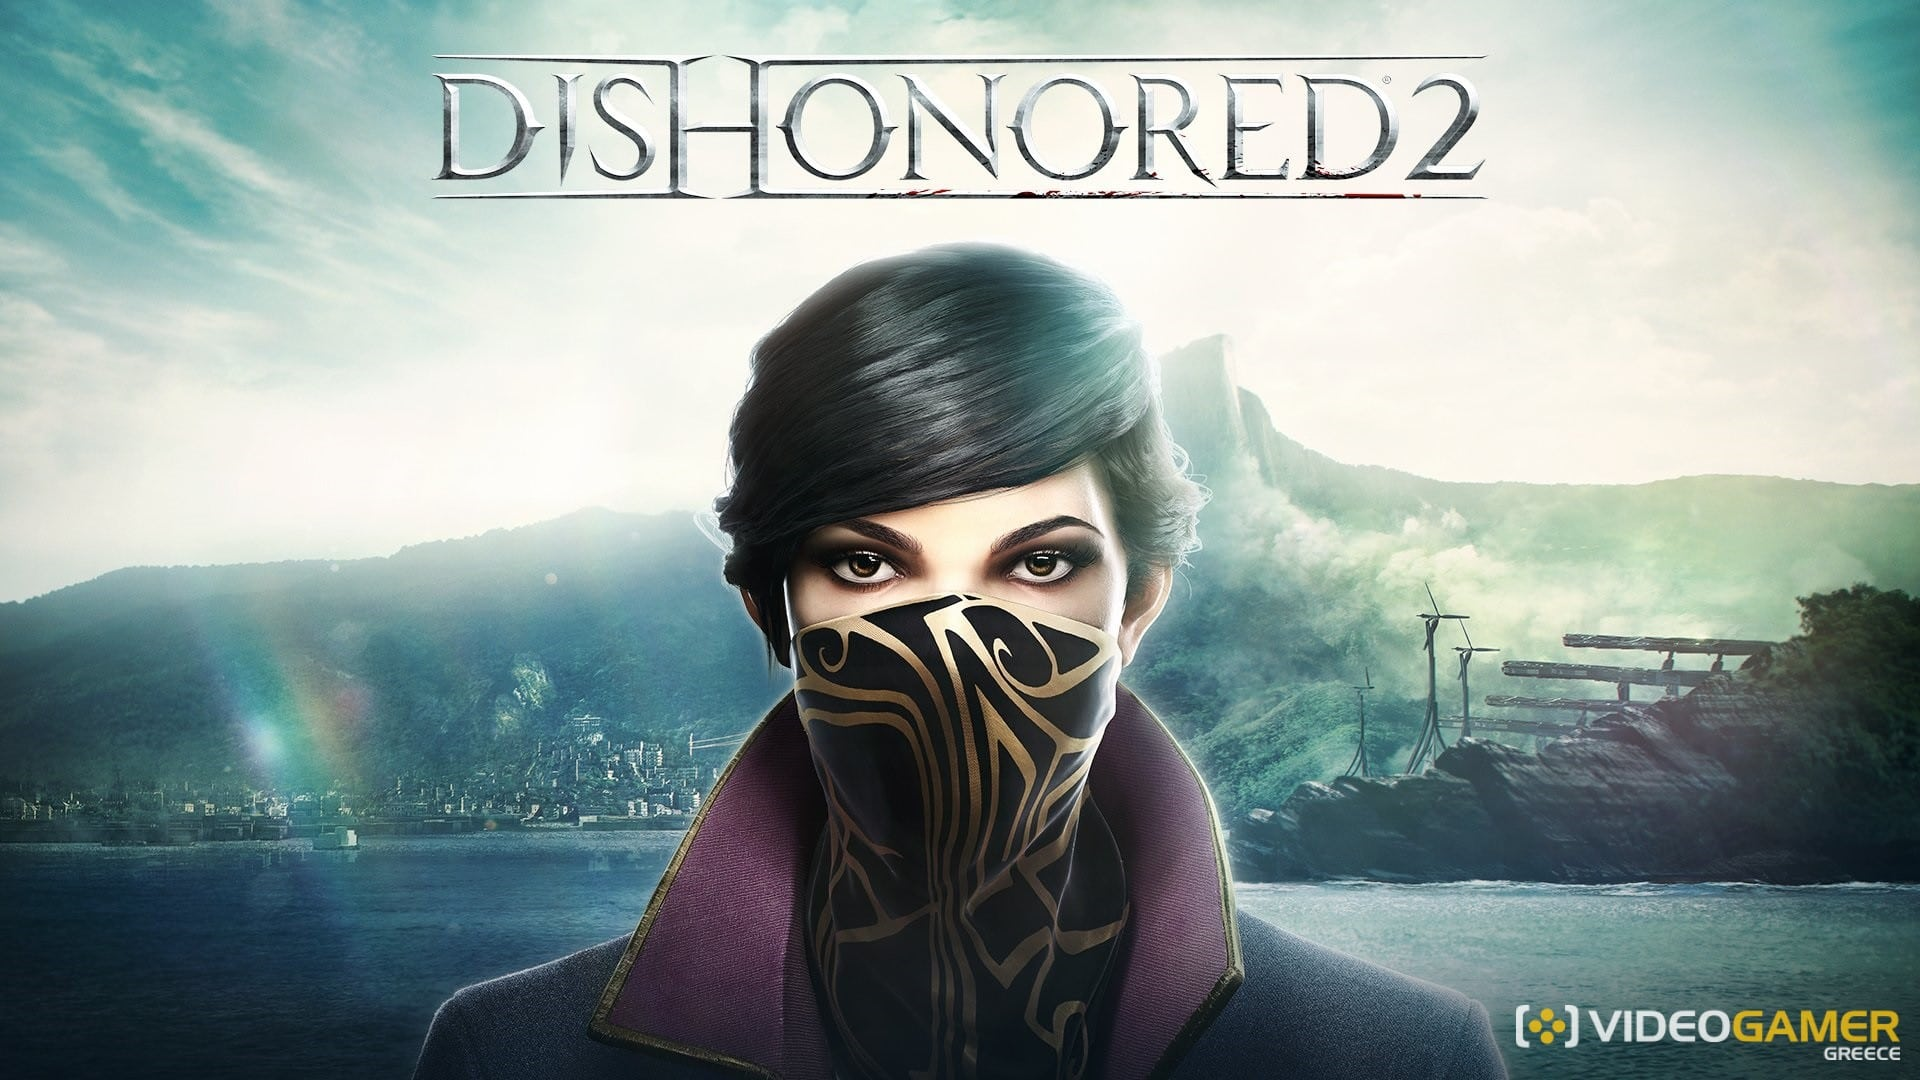 Dishonored 2 VideoGamer.gr